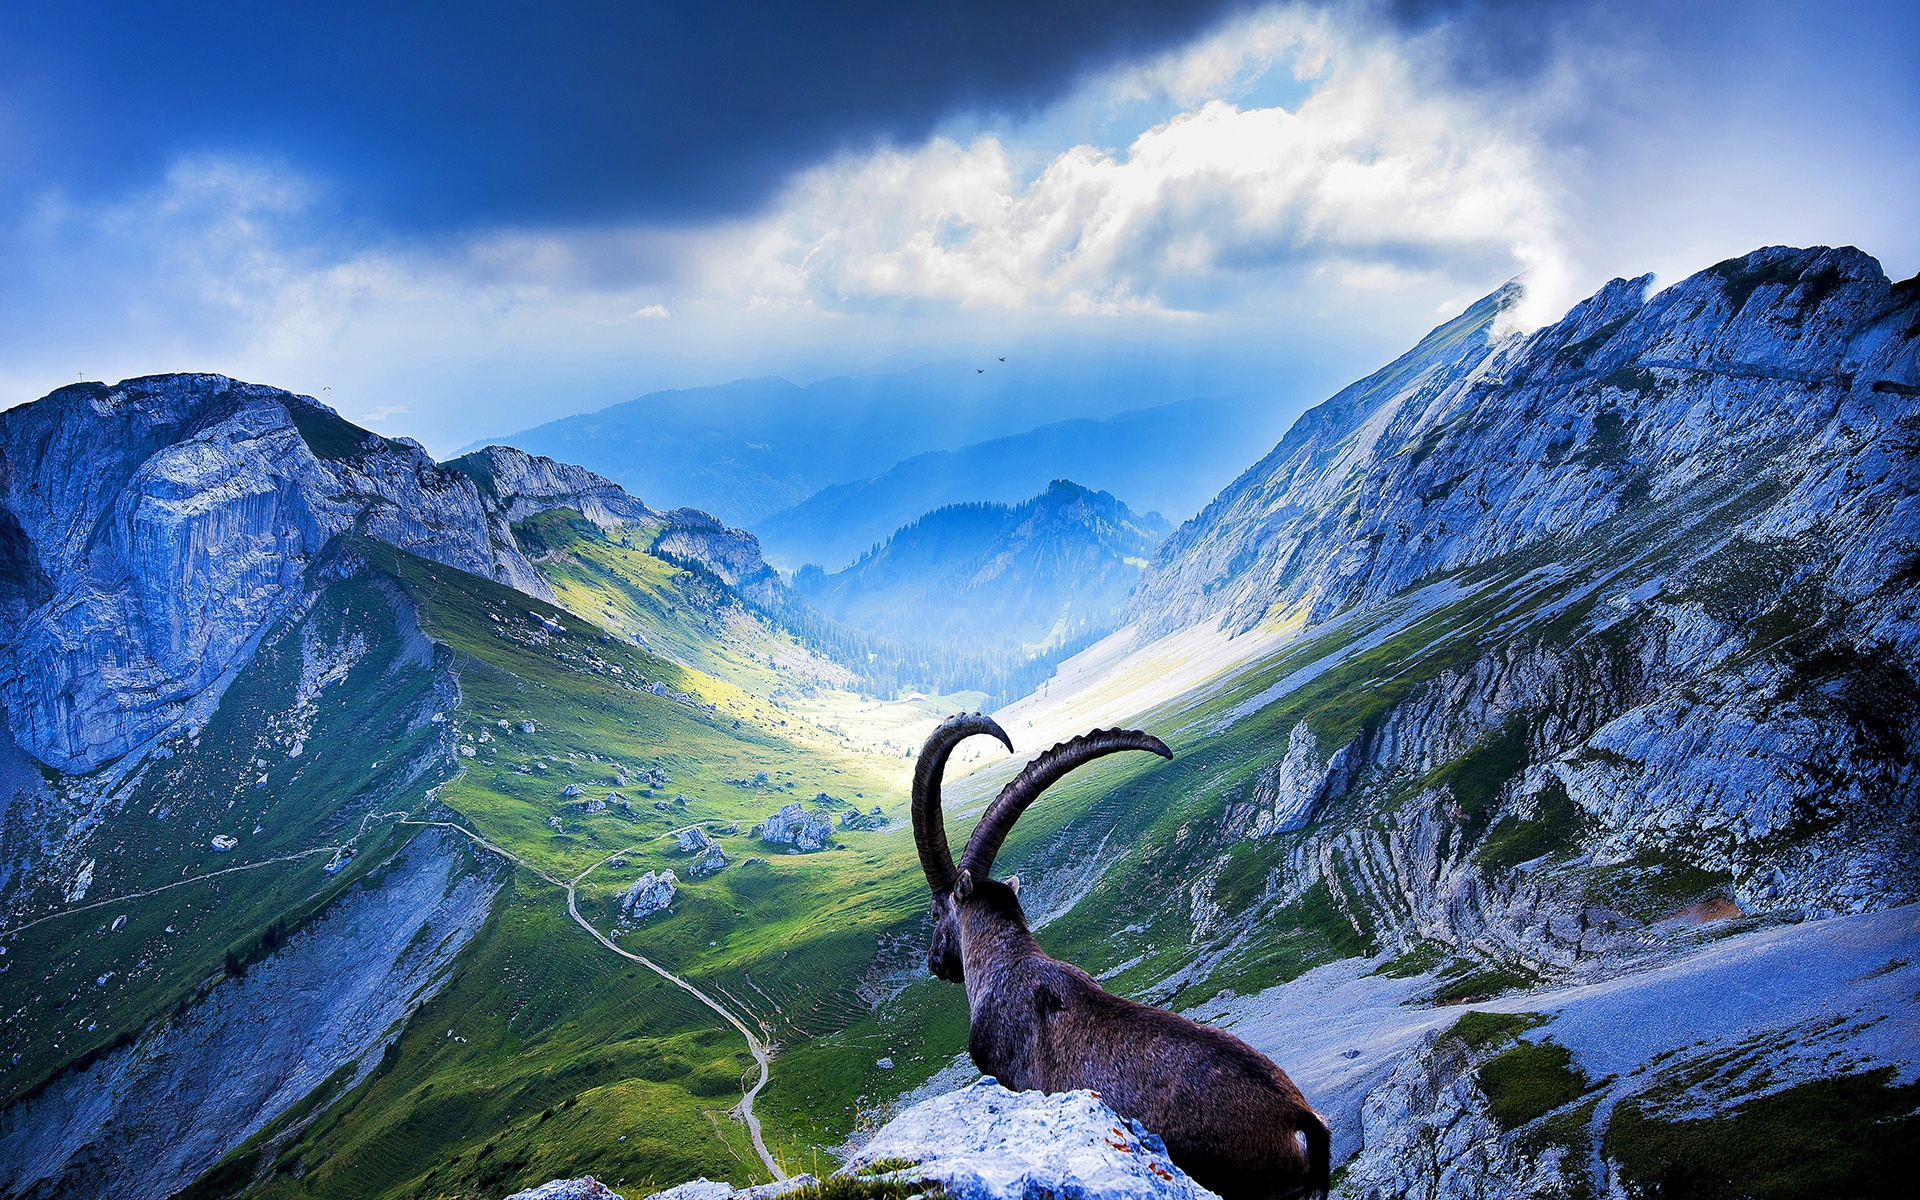 Hd Desktop Backgrounds: Switzerland Wallpapers, Pictures, Images